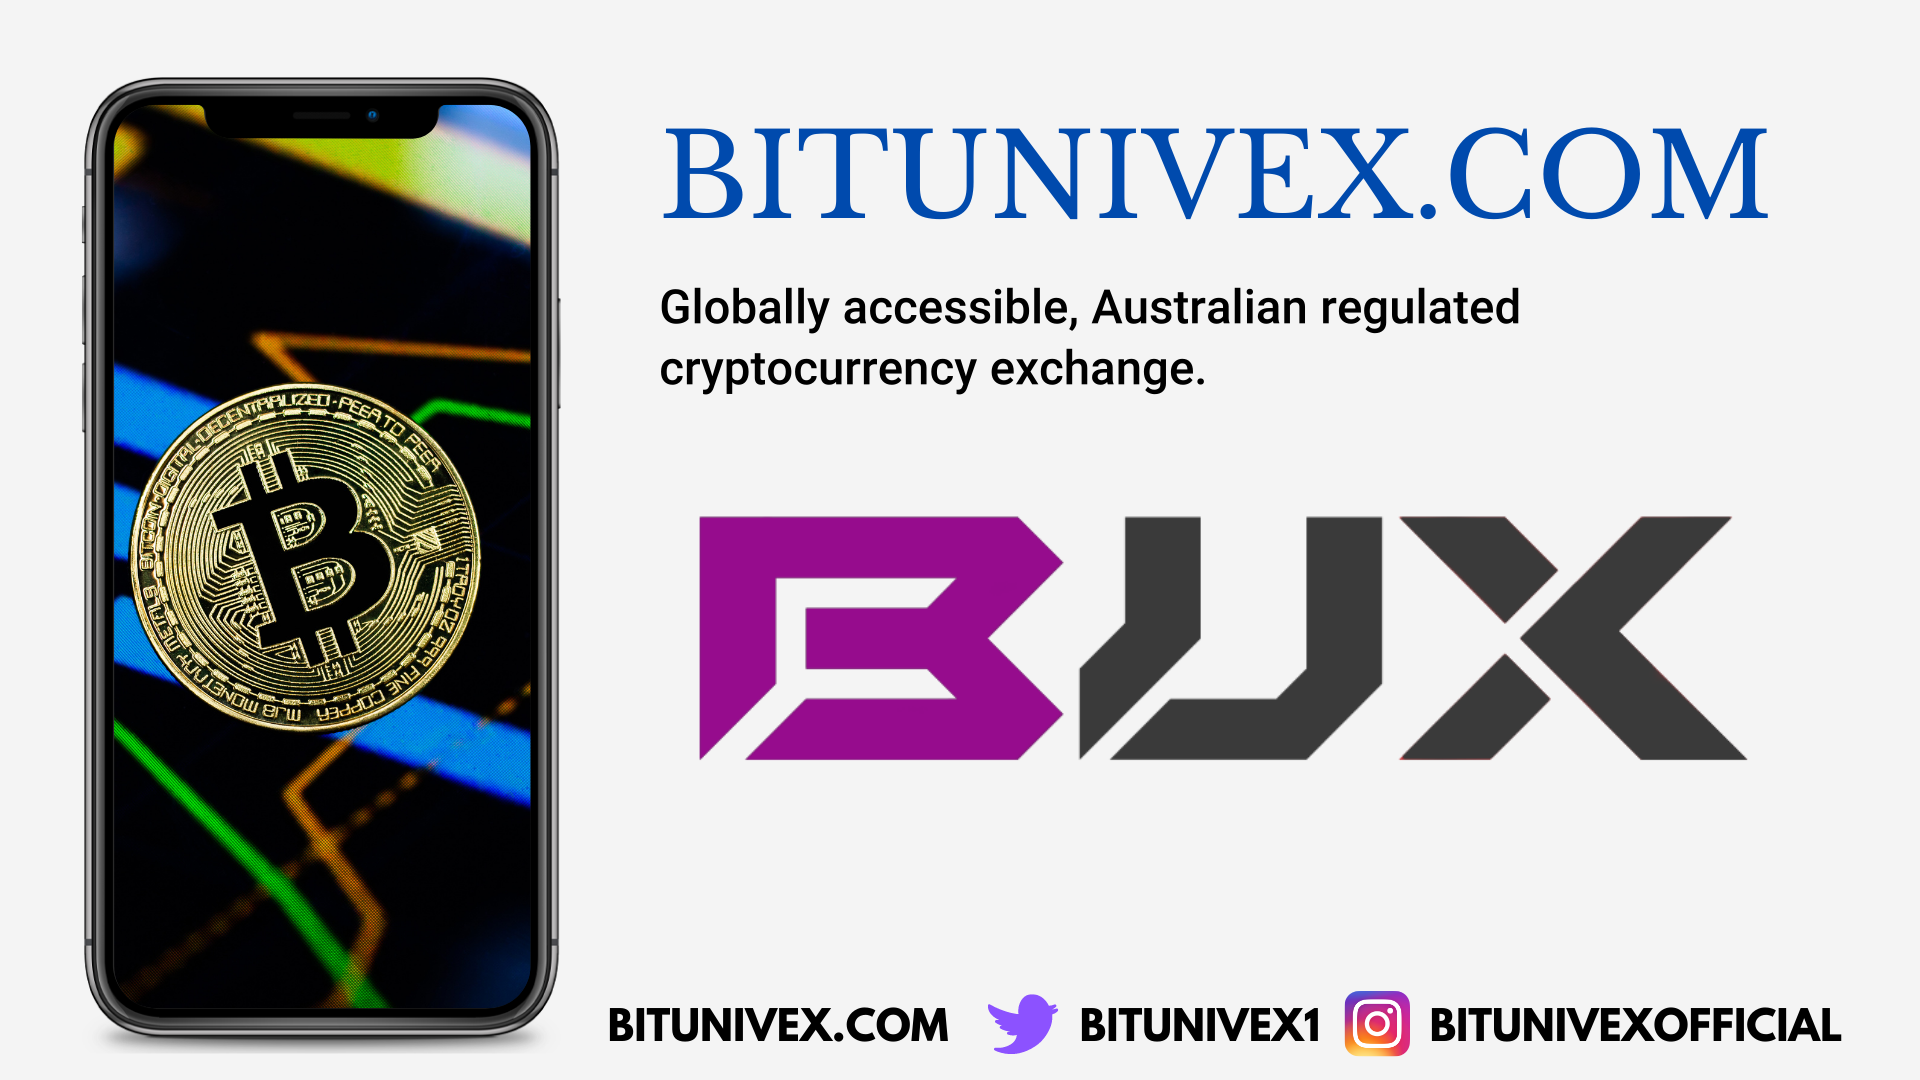 BITUNIVEX WILL INVEST IN GREEN CRYPTO UNTIL IT REACHES EMISSION FREE TRADING